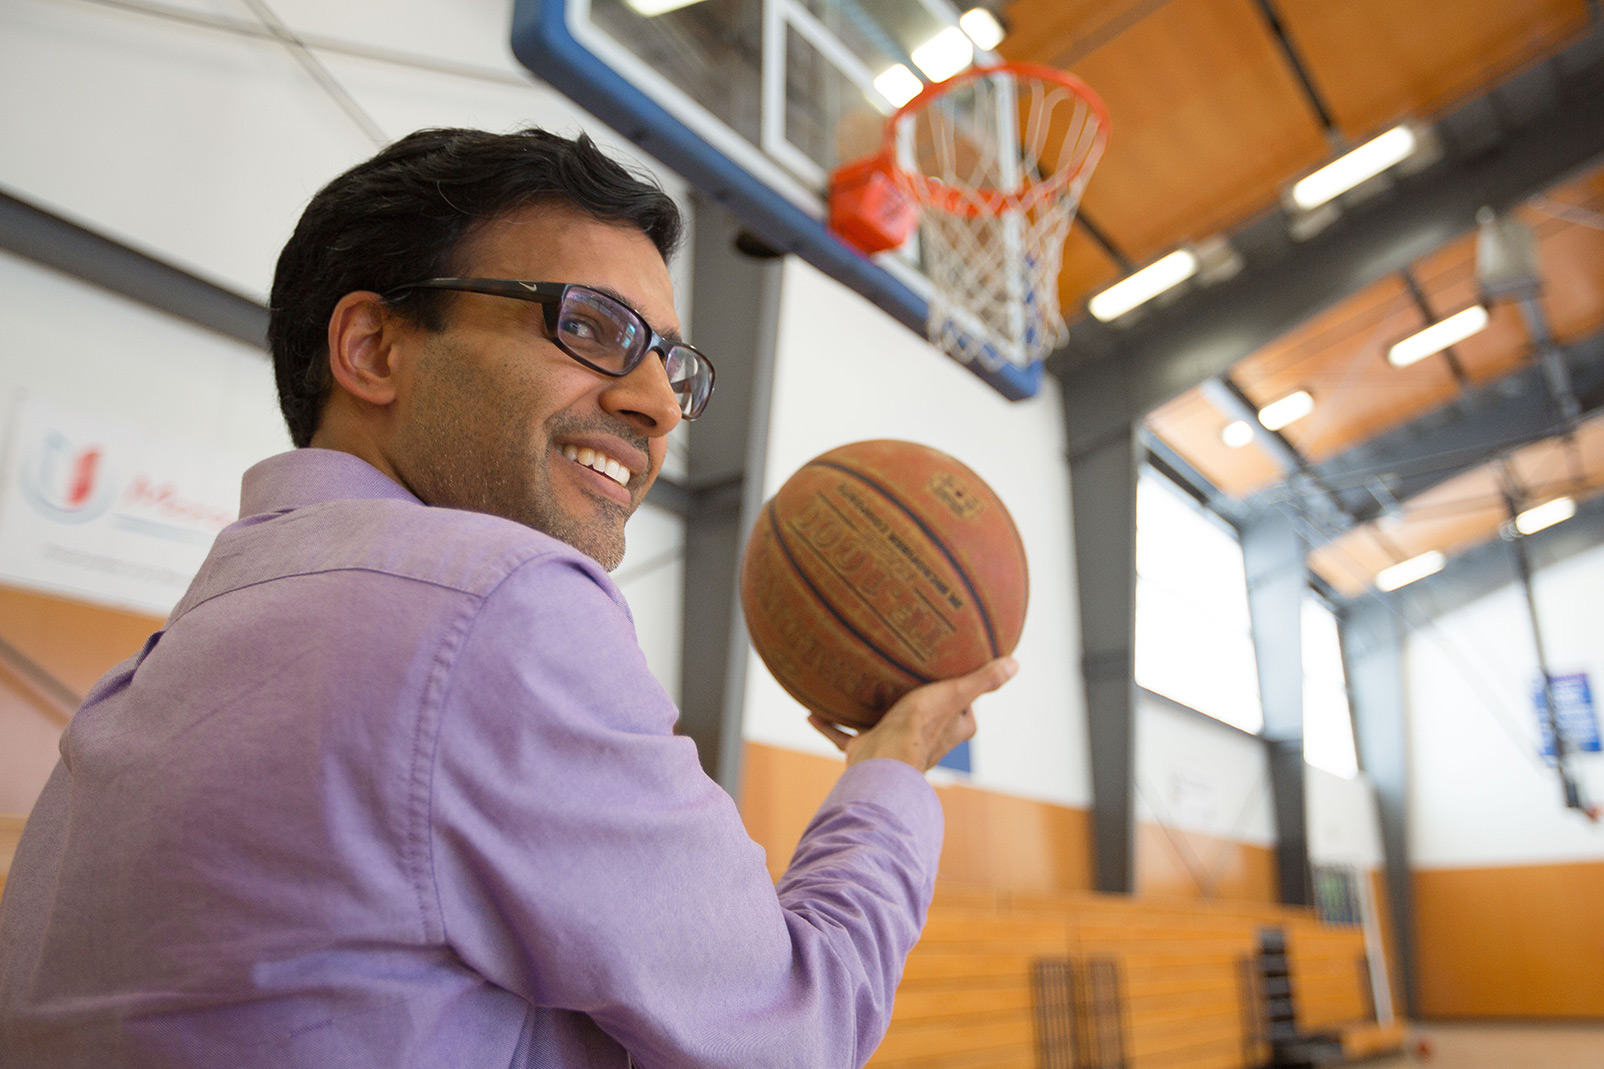 Professor Harish Bhat won't say his NBA predictions are a slam dunk, but they are pretty accurate.